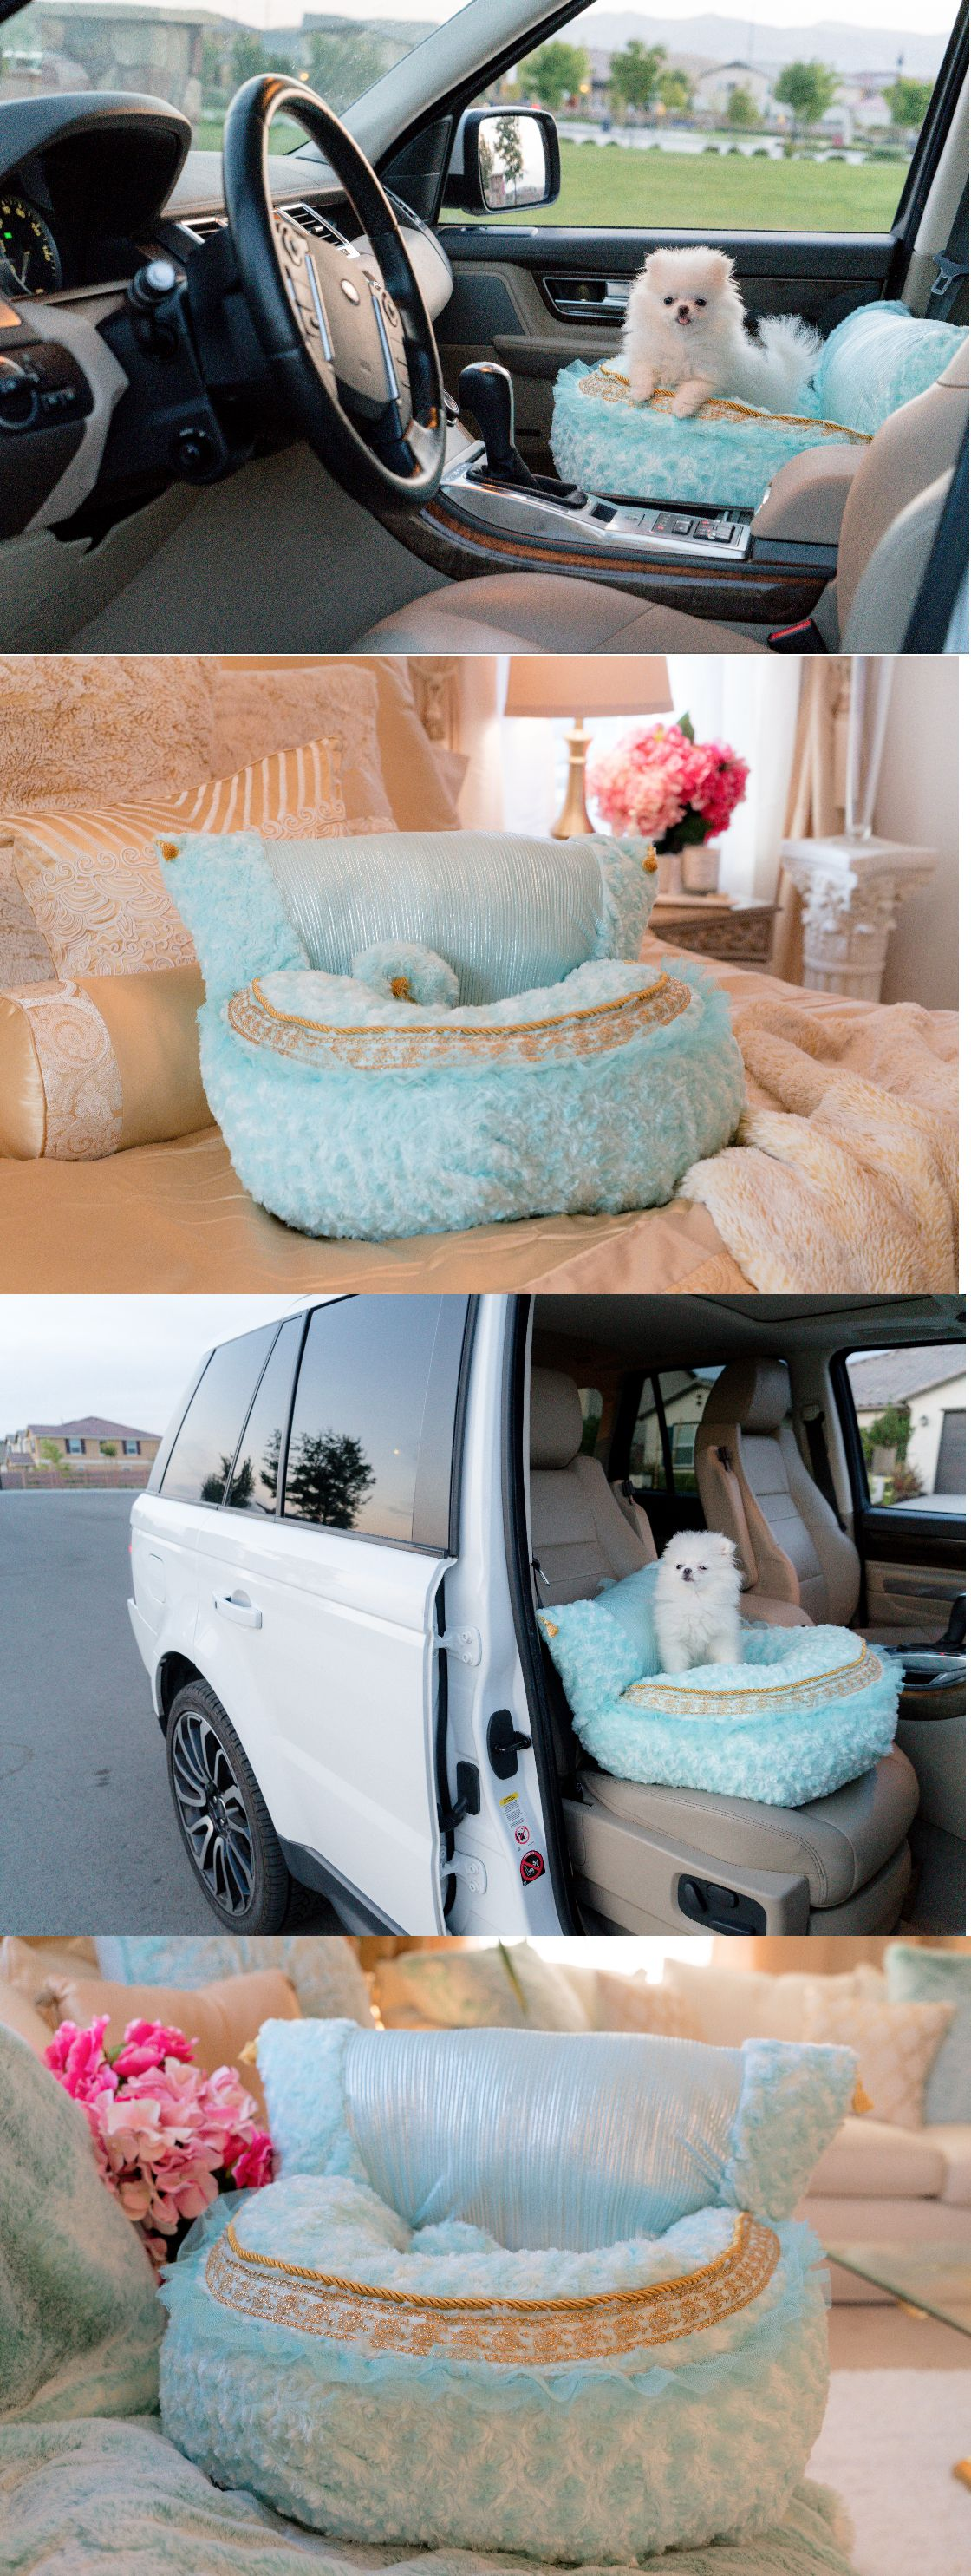 Car seats and barriers new luxury pet car seat dog puppy